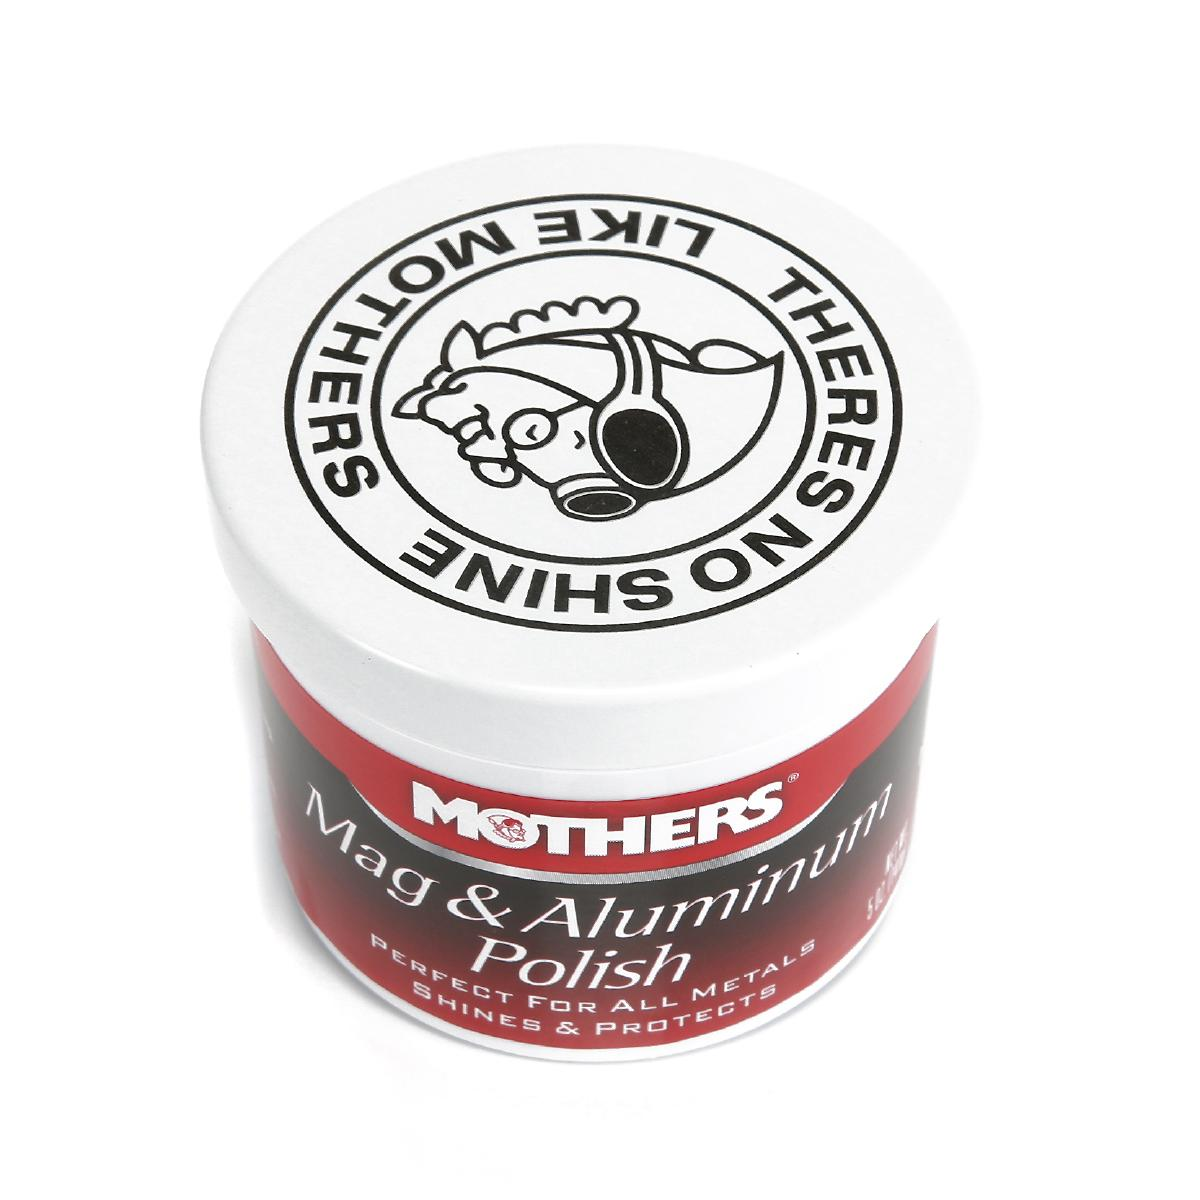 Metallpolermedel Mothers Mag & Aluminum Polish, 150 ml